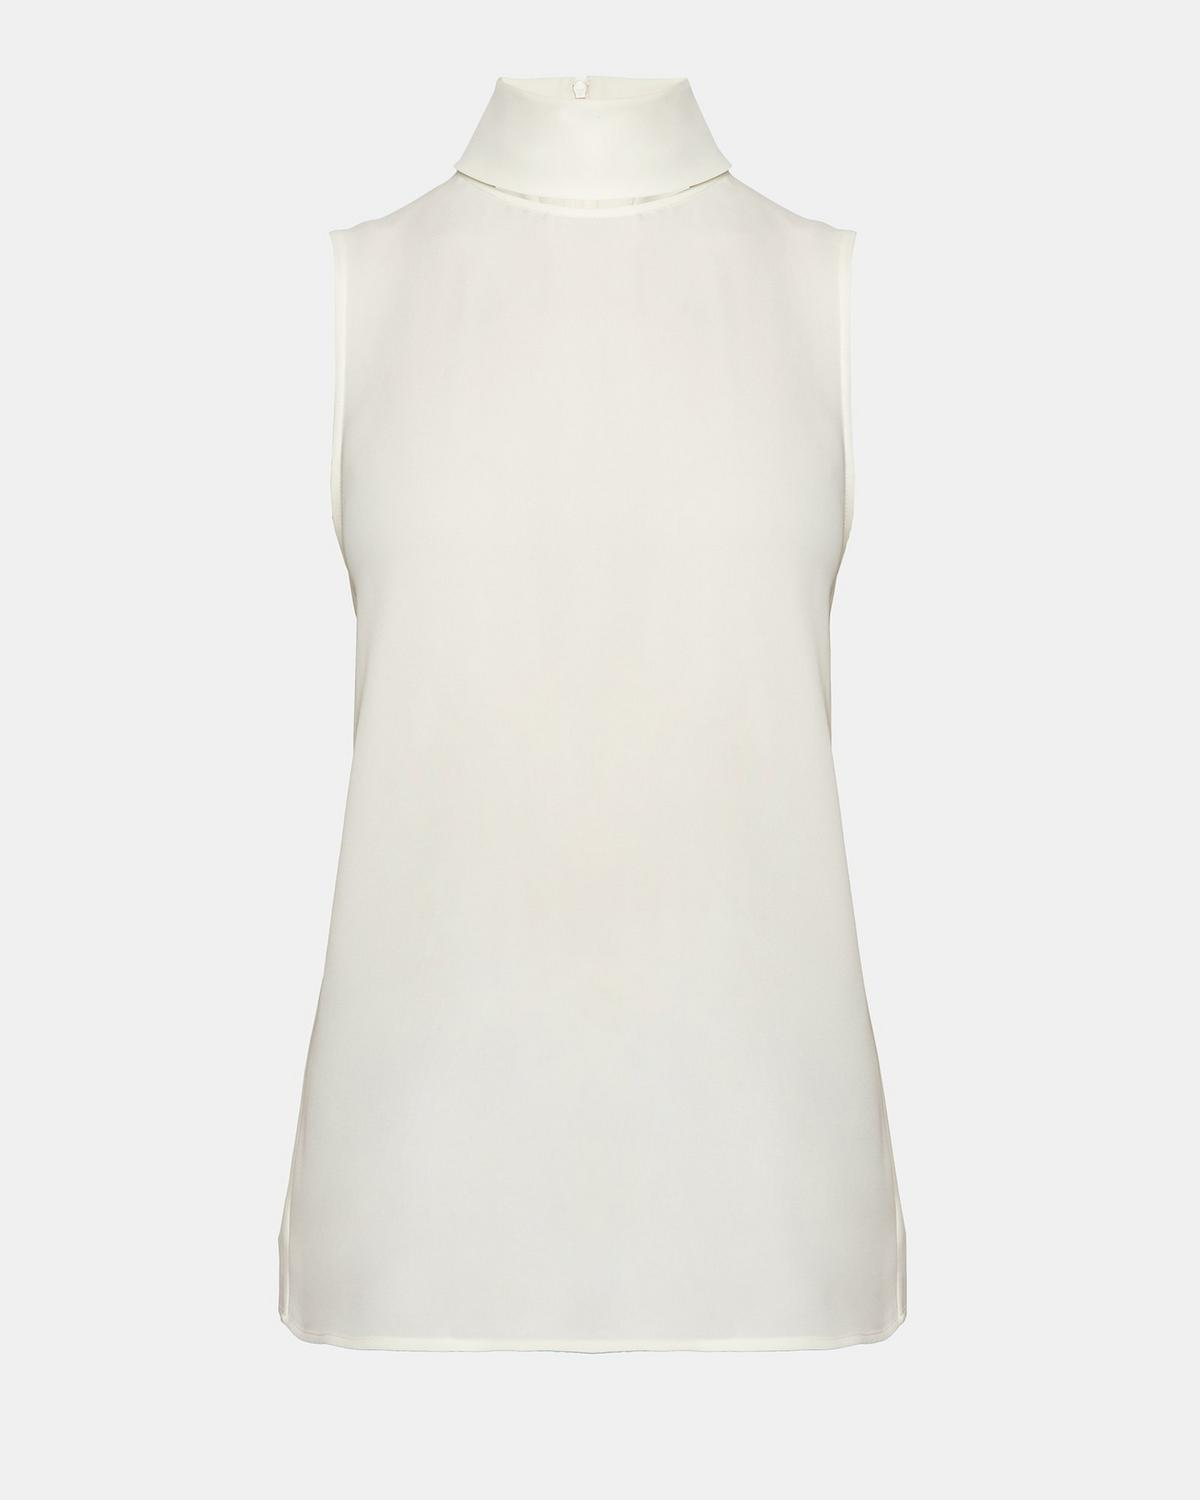 Clothing, Shoes & Jewelry Theory Womens Slit Collar Top Contemporary & Designer